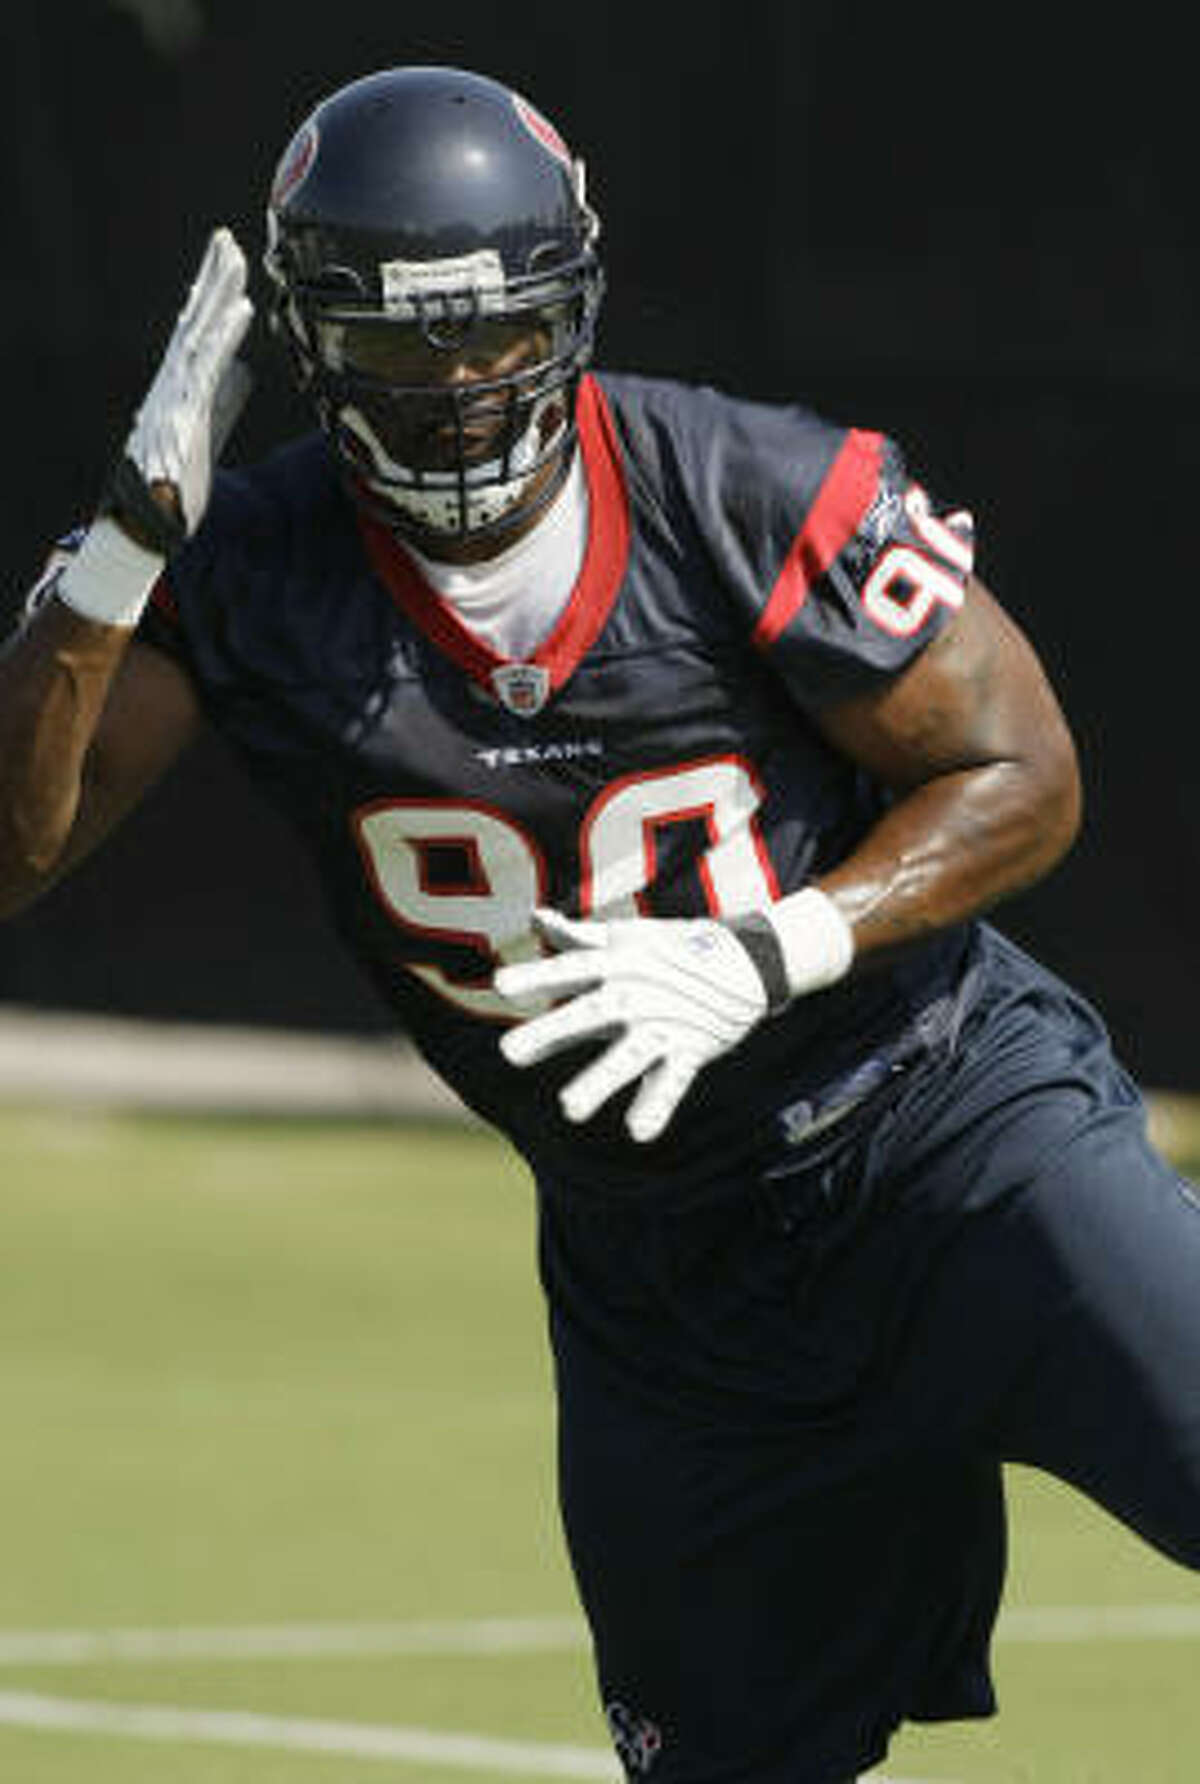 Defensive end Mario Williams is just on of the team's stars who'll need to play well in order for the Texans to have a winning season.